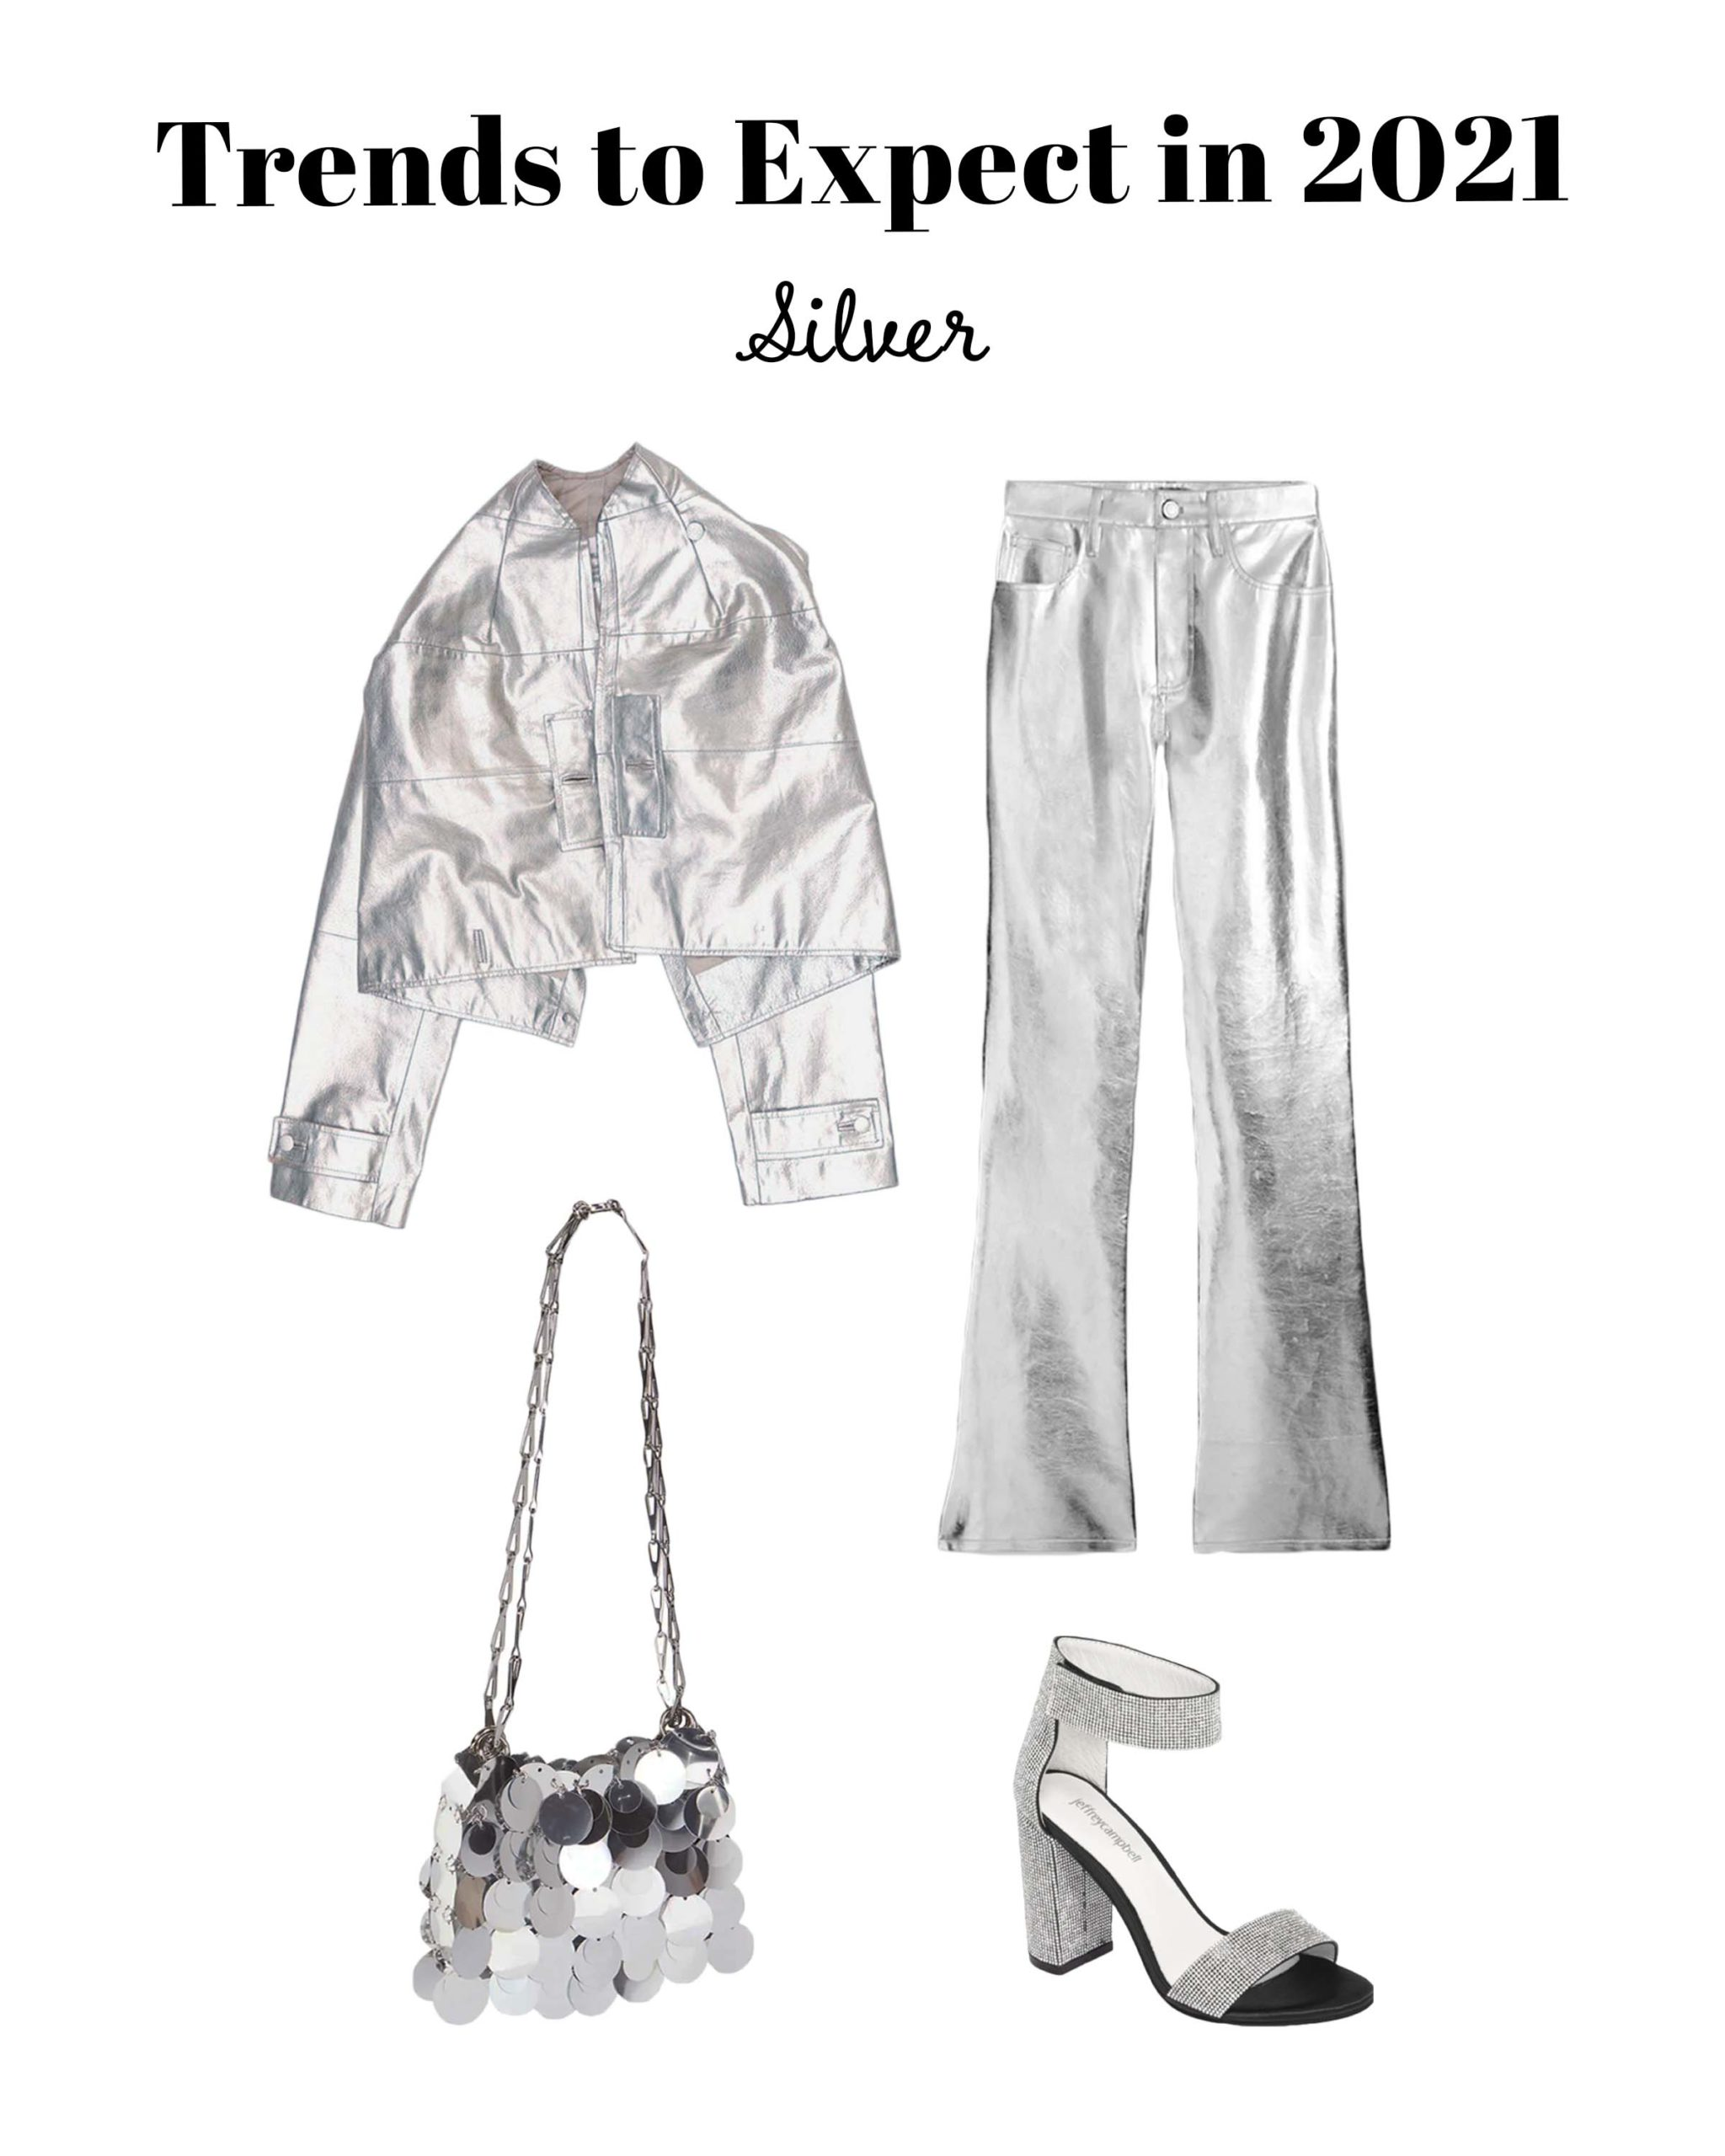 silver clothing